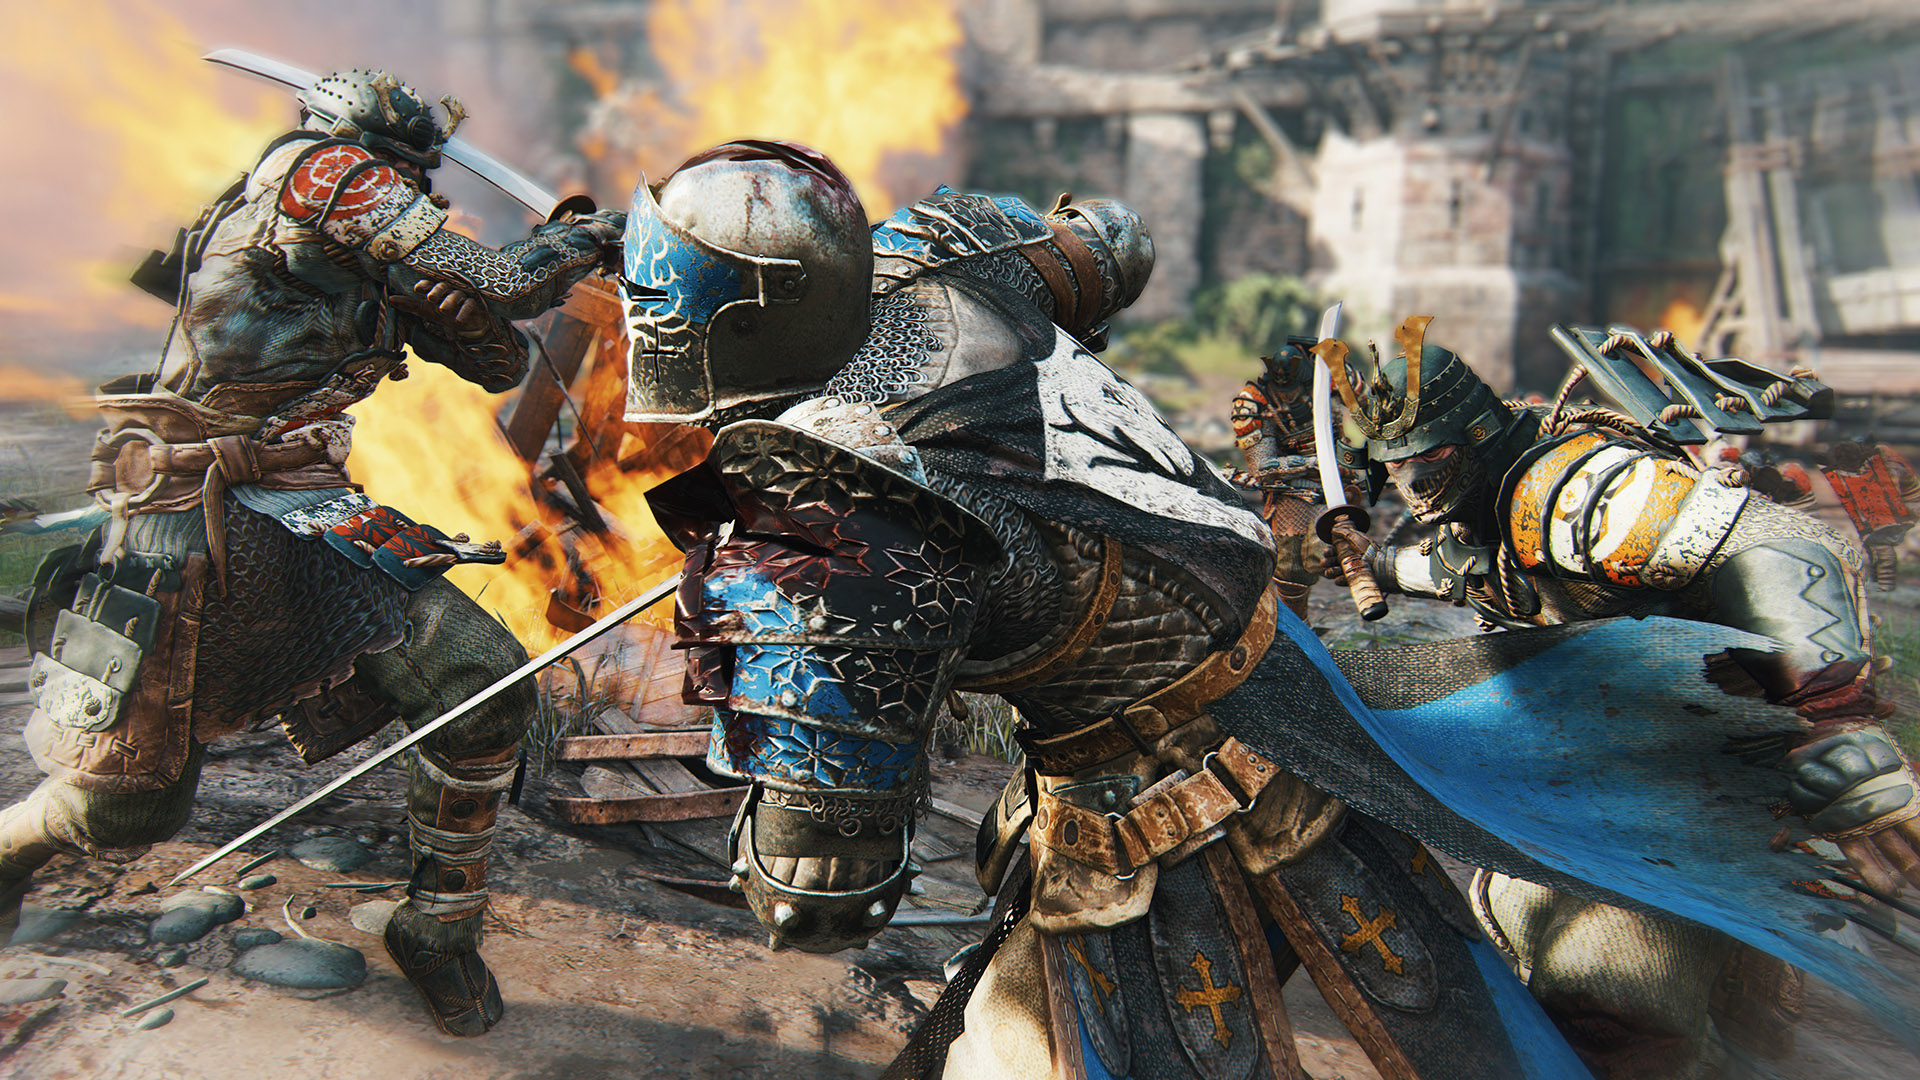 When fighting multiple enemies in For Honor, keep them side-by-side and focus on a primary target. Block the secondary target (regardless of how they attack) by blocking to the side they're standing on.